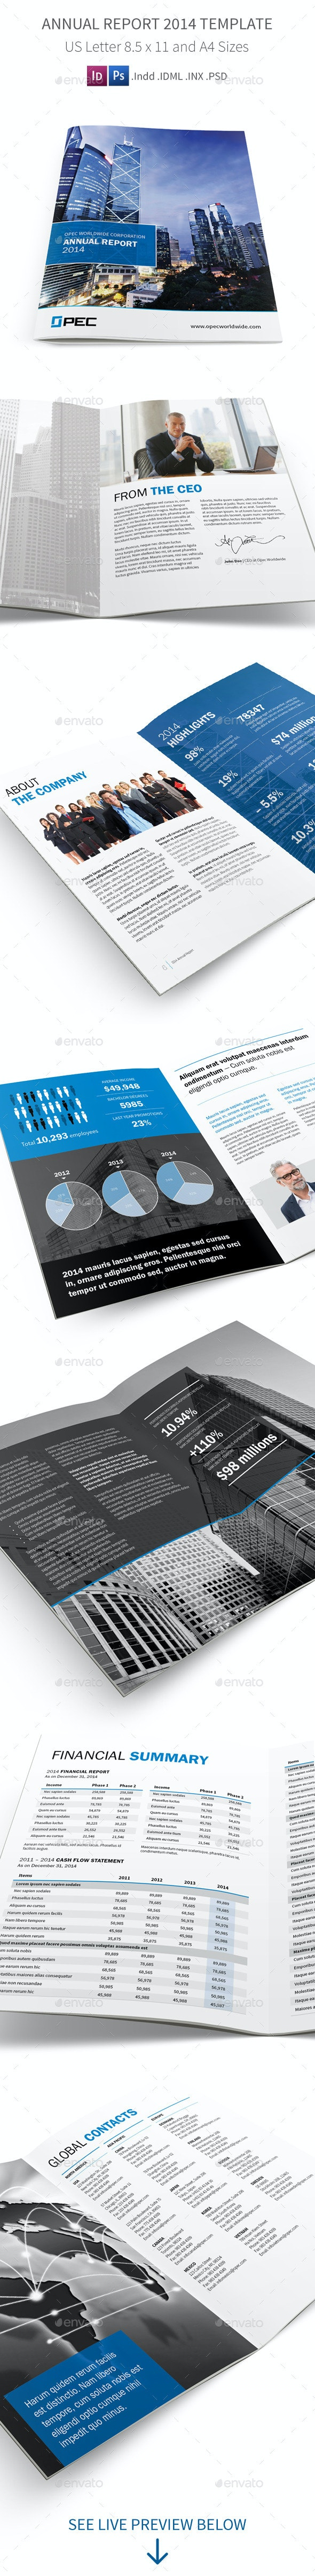 Annual Report 2014 Template - Corporate Brochures